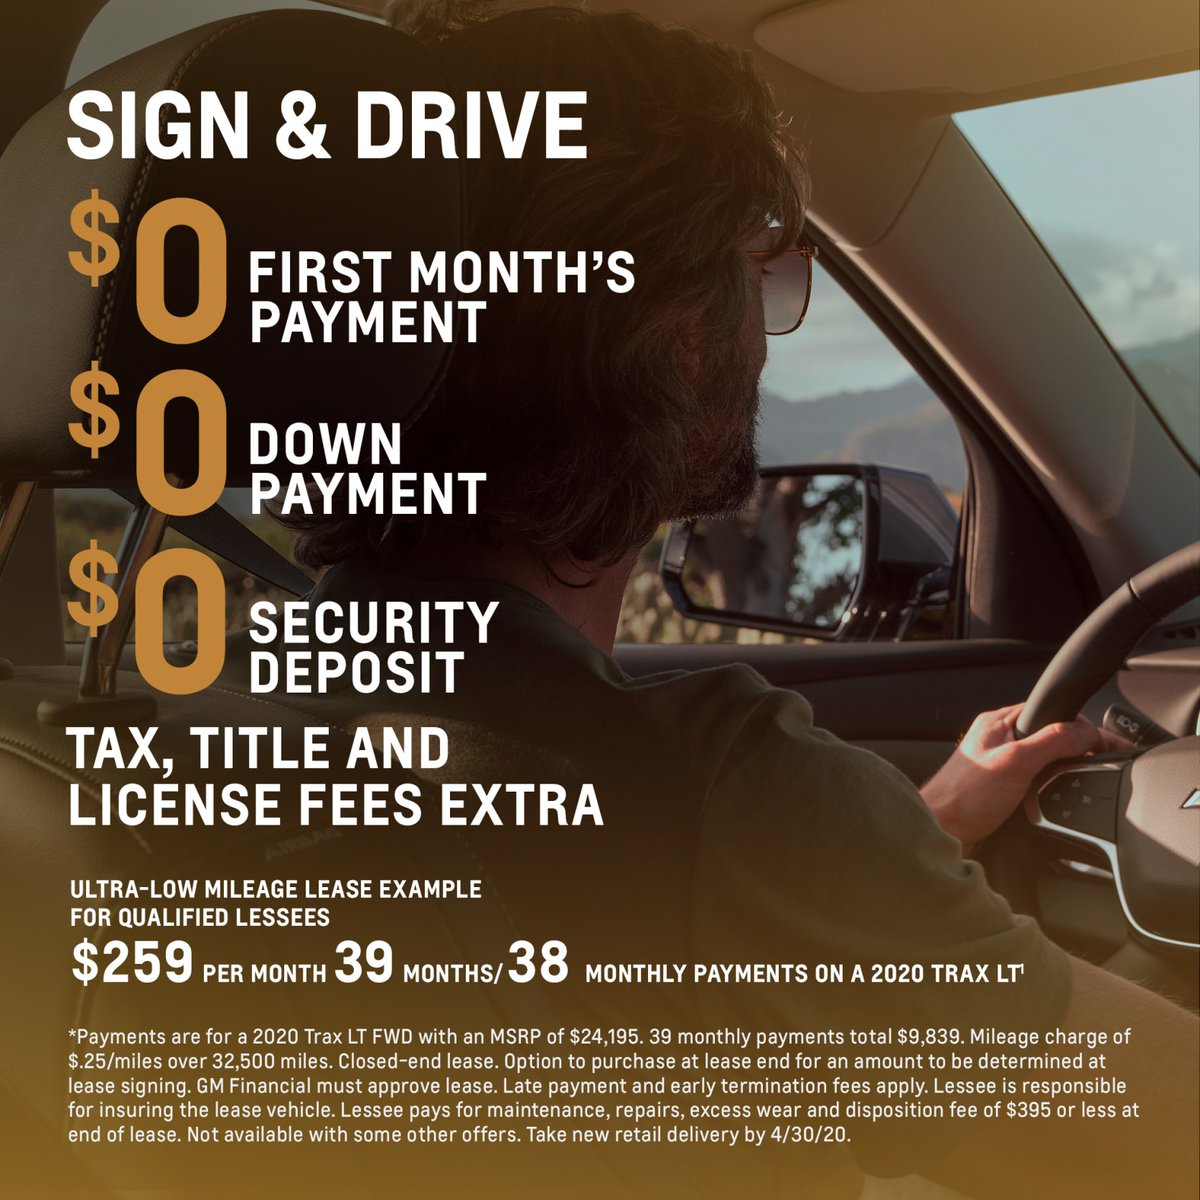 Stephen Wade Chevrolet Cadillac On Twitter Interested In A New Car Why Not Try The Super Sporty And Super Affordable Trax 0 First Month S Payment 0 Down Payment